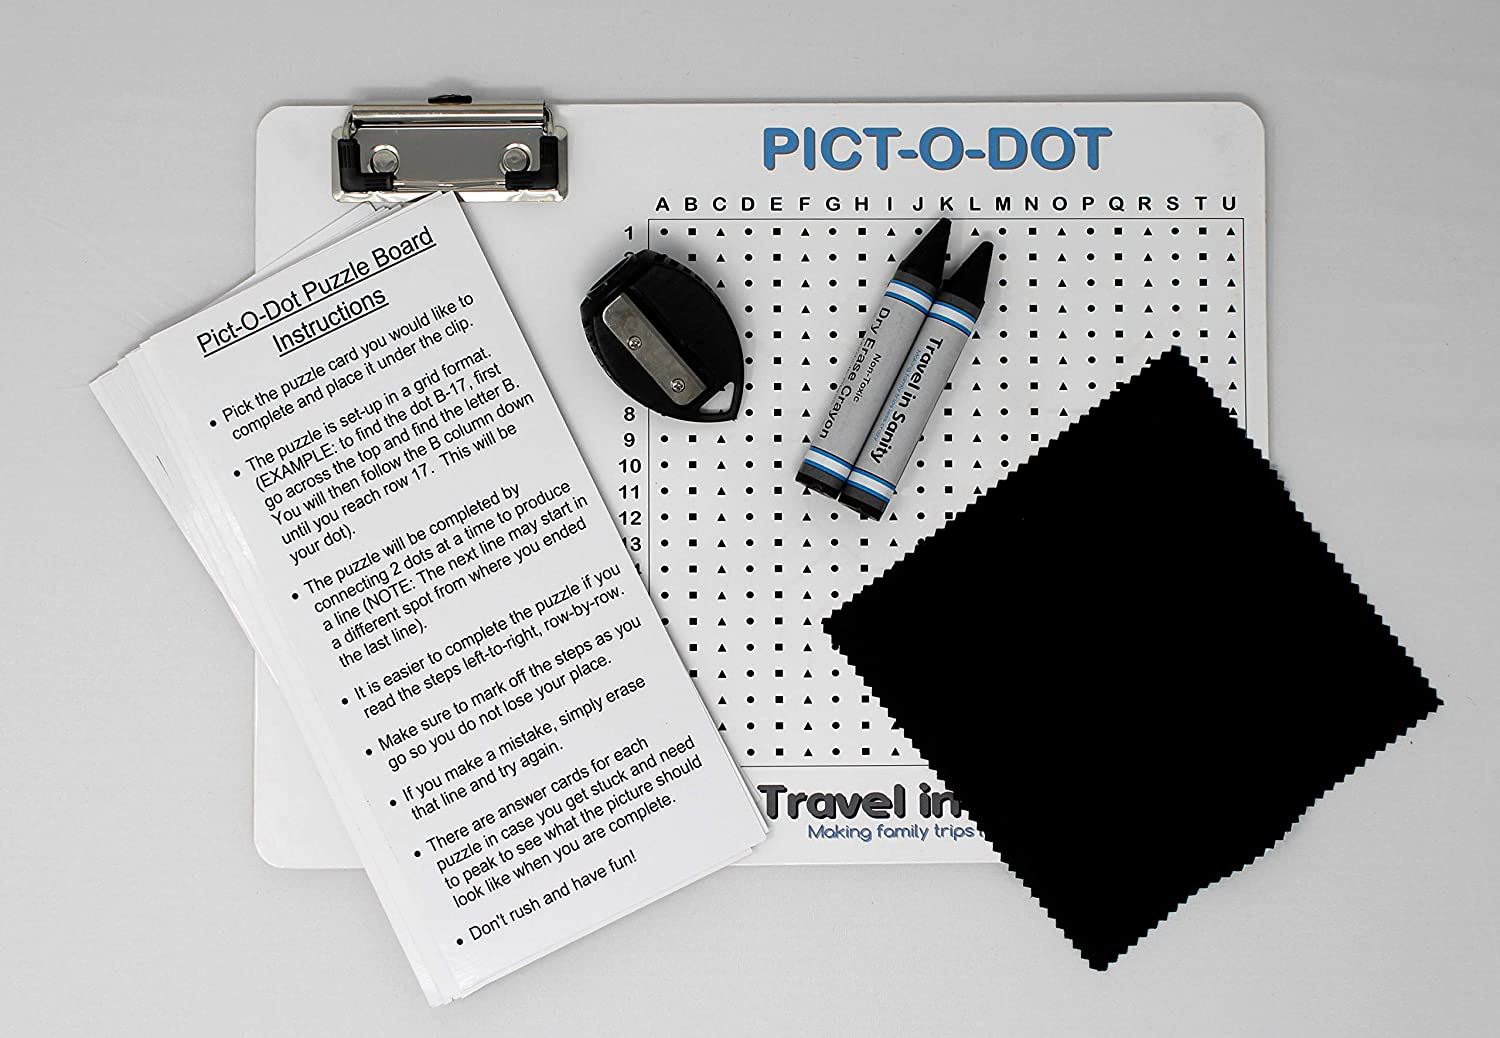 Write-on // Wipe-Off Board with Dry-Erase Crayons and Sharpener Connect The Dots Lap Board Dot-2-Dot with a Twist Quiet Activity Travel Game Pict-O-Dot Puzzle Board with Clip